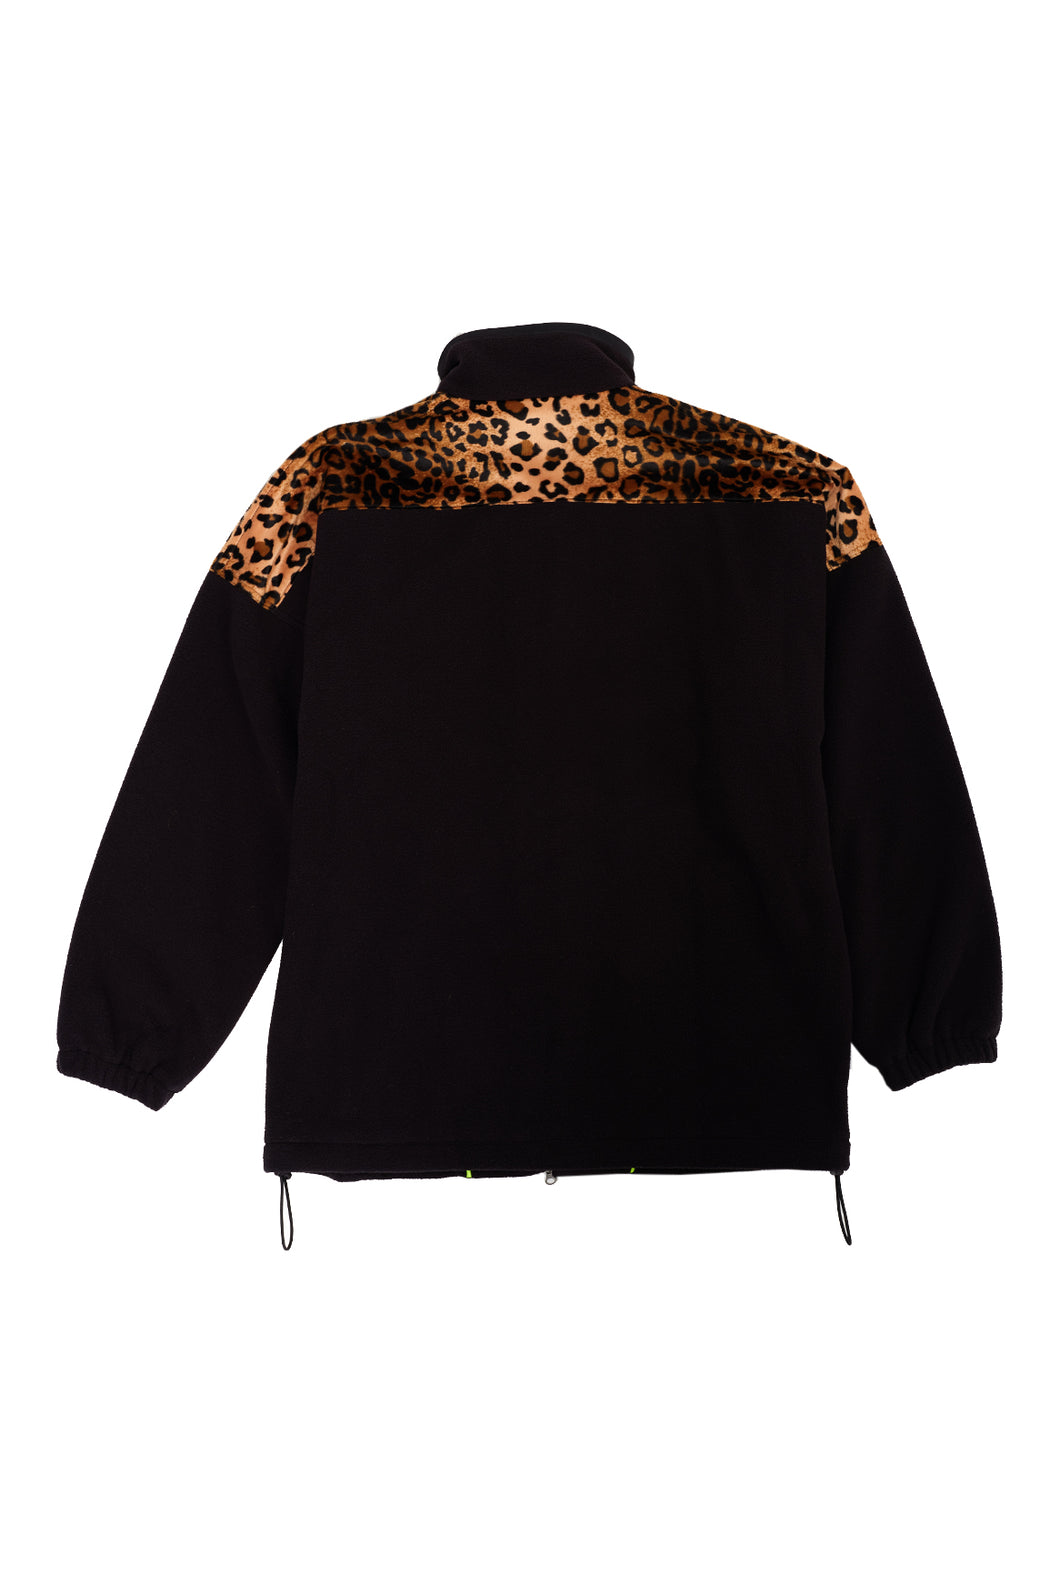 Oversized Leopard Fleece - Black/Leopard